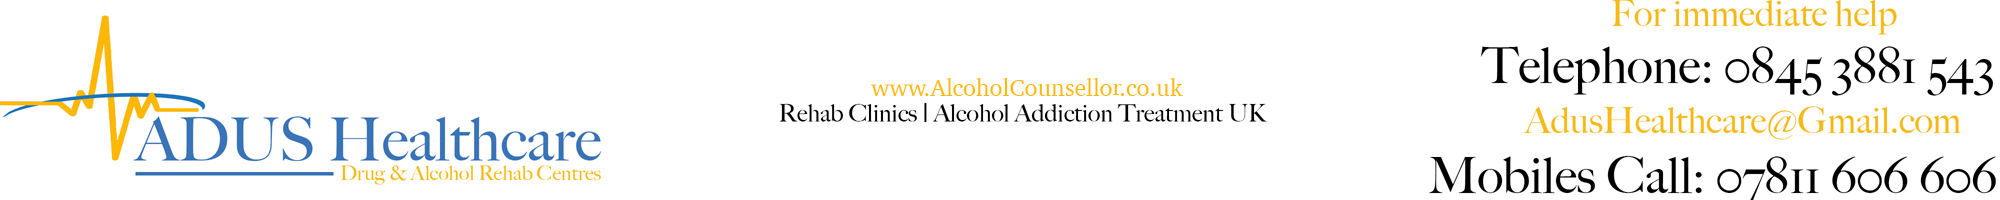 Alcohol counsellor